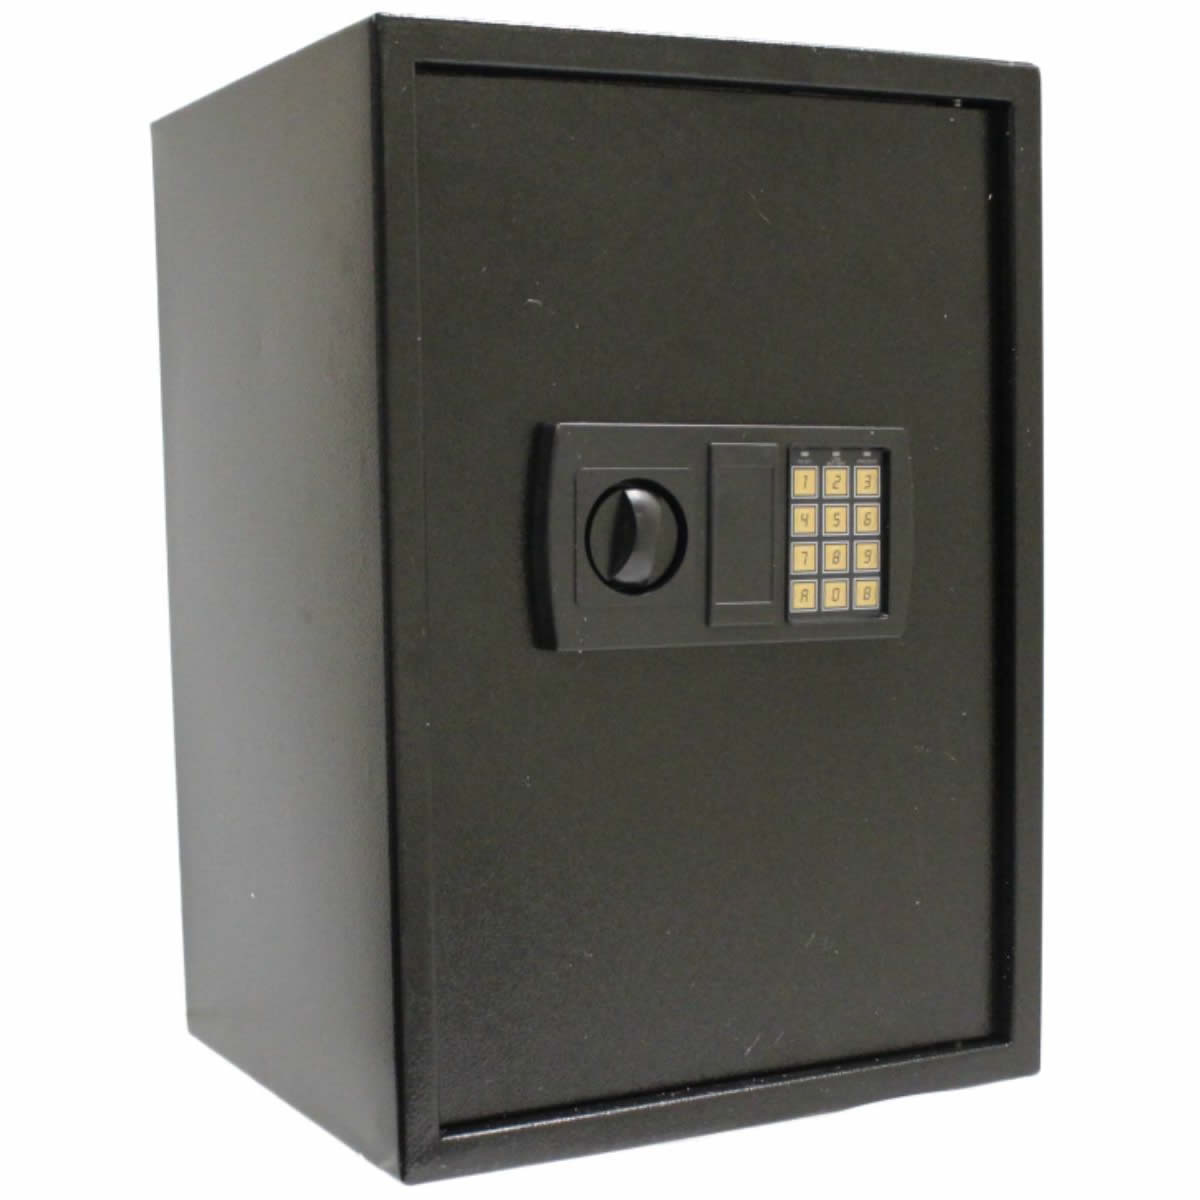 large black 350x310x500 steel home security safe electronic digital keypad lock. Black Bedroom Furniture Sets. Home Design Ideas